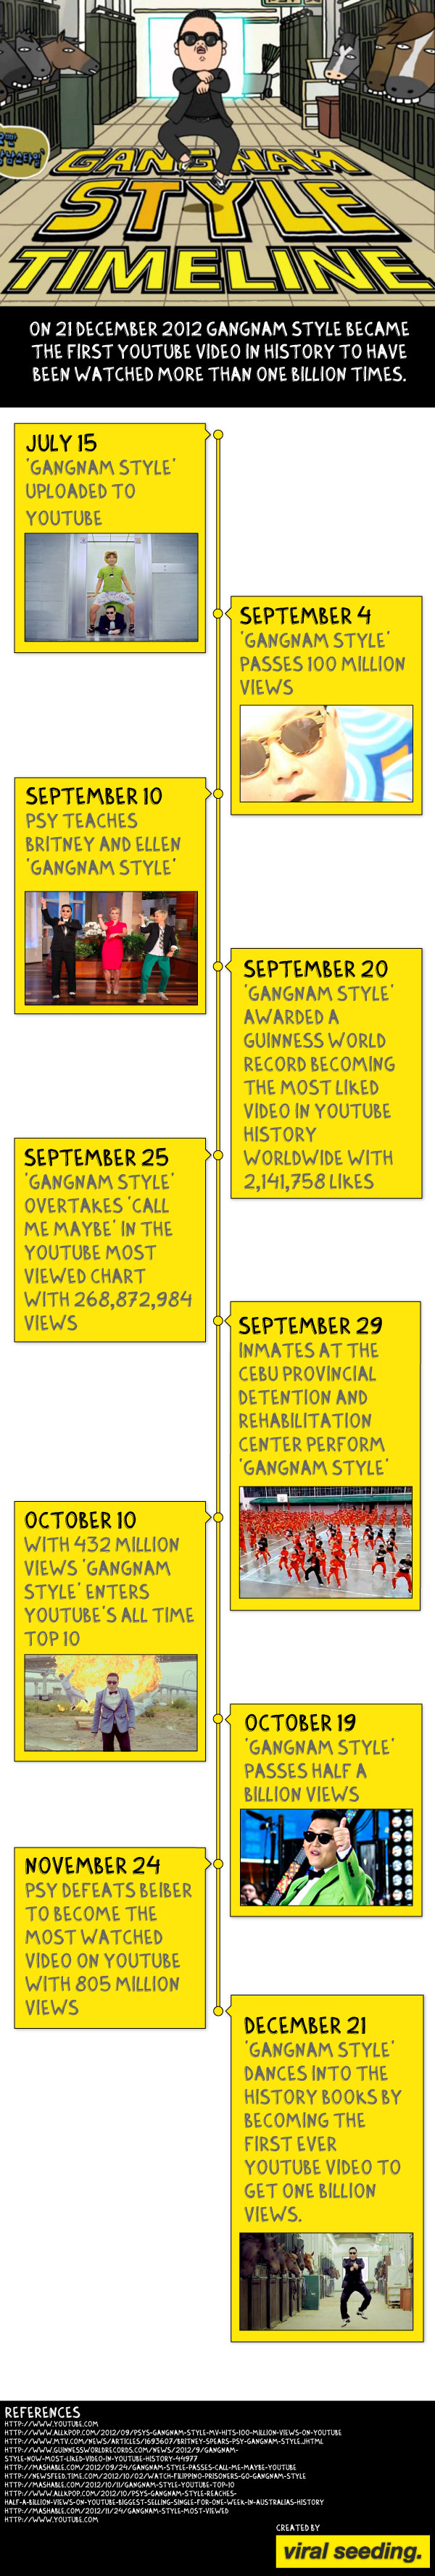 gangnam-style-timeline-infographic